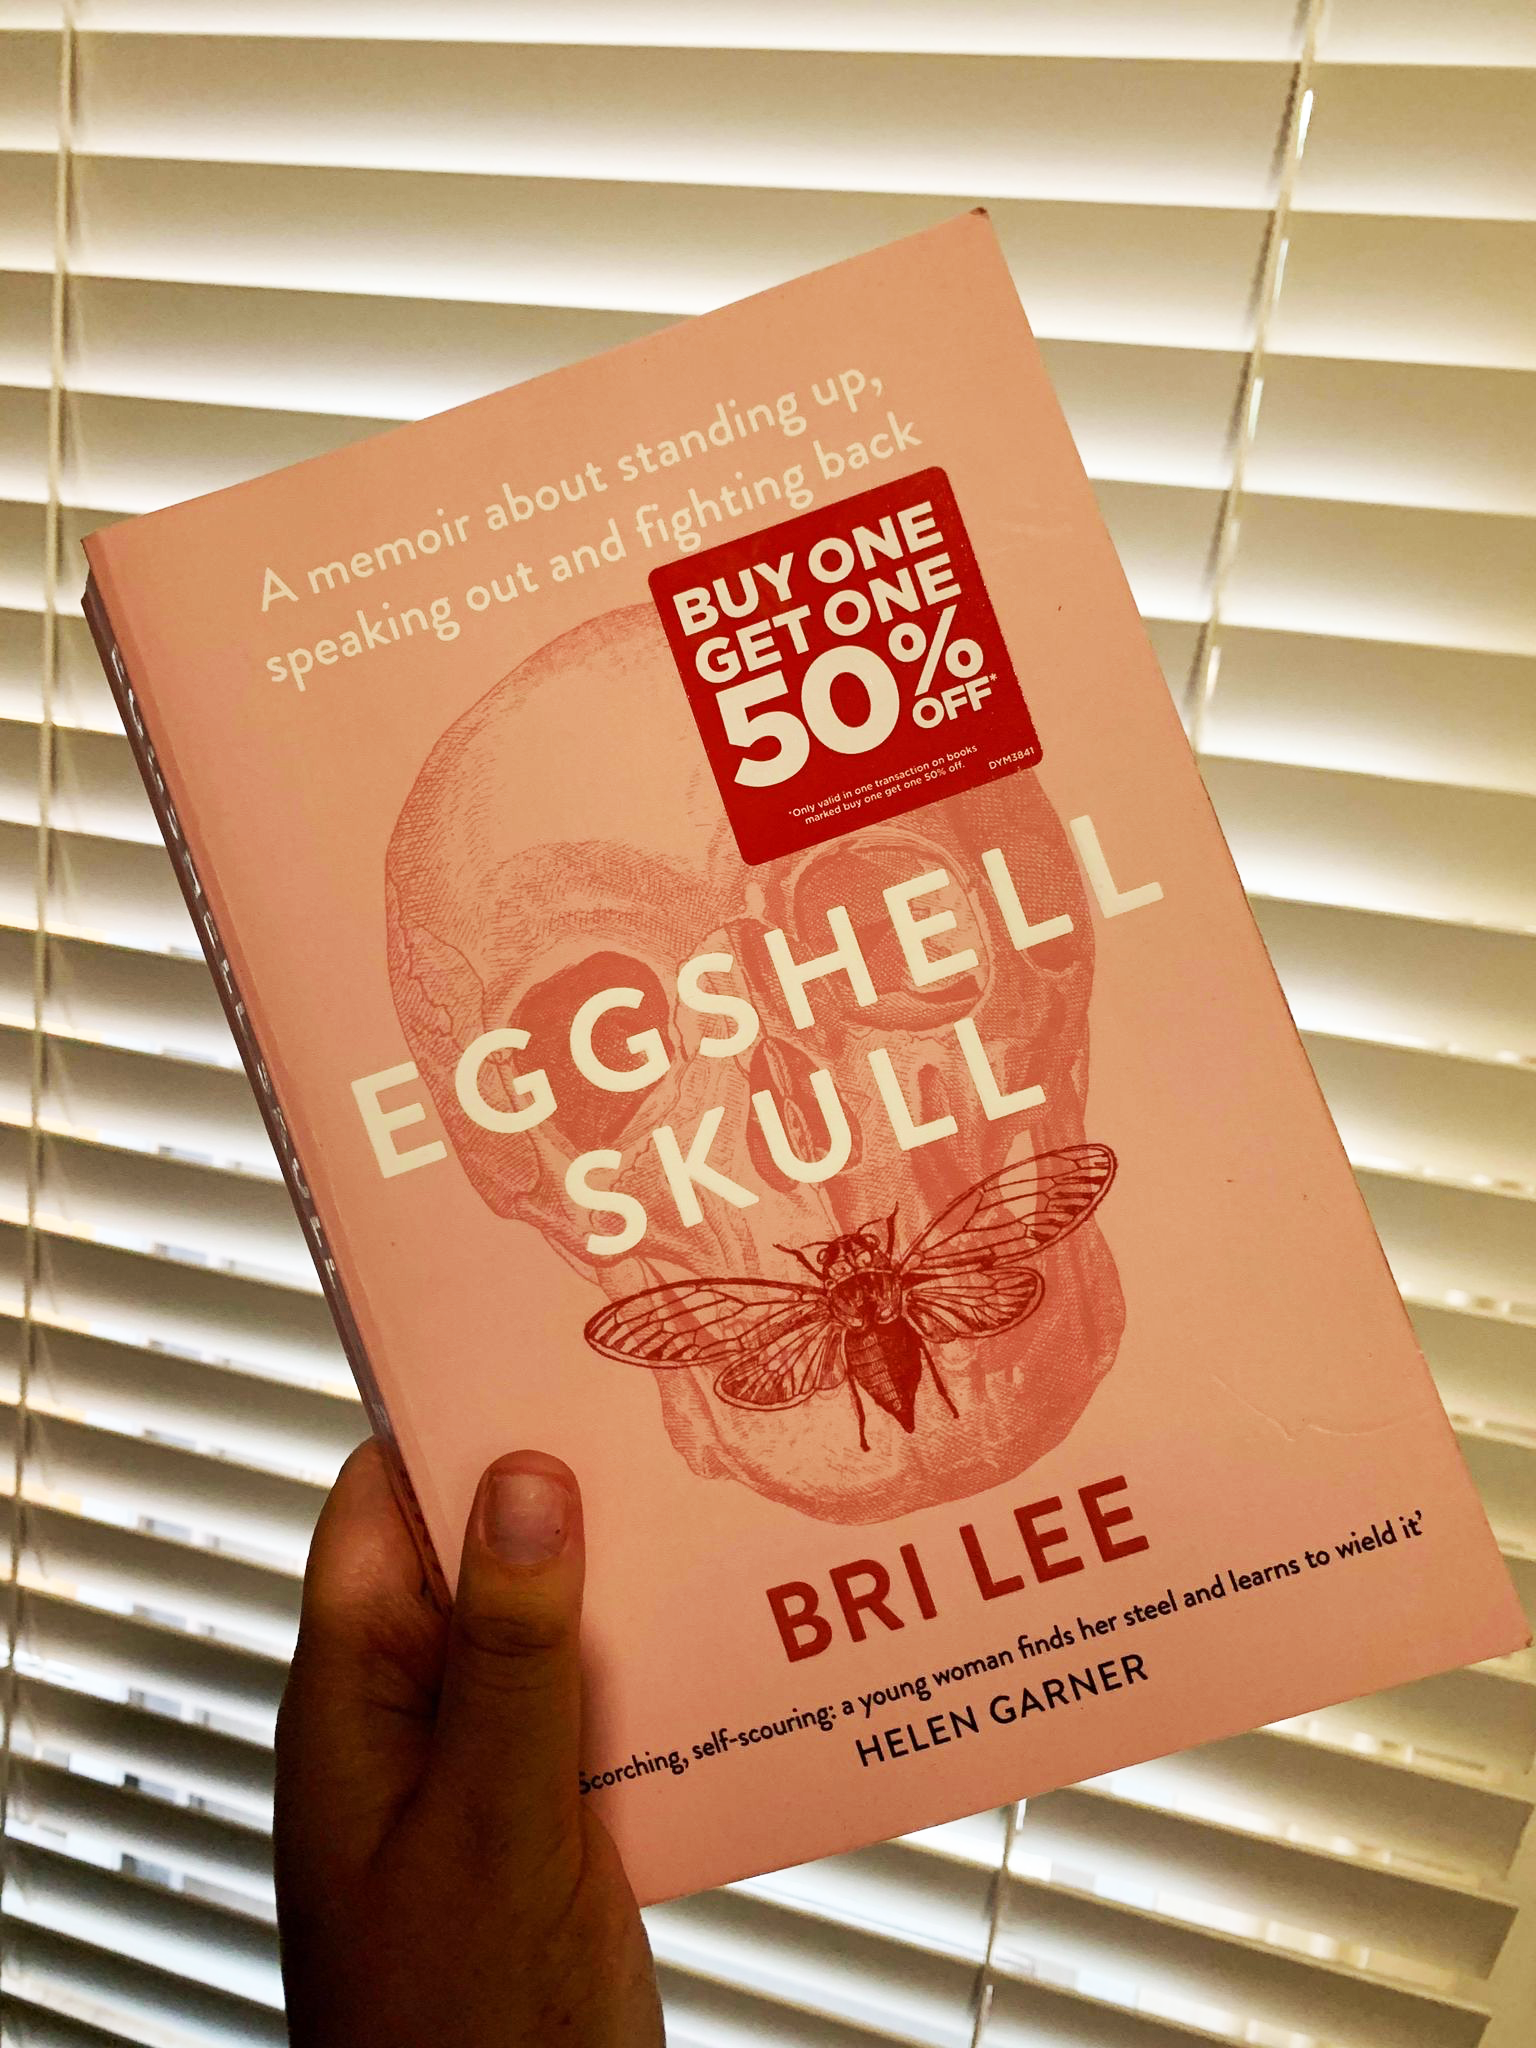 Book cover shows a faint etching of a skull with a winged insect stretching across the mouth